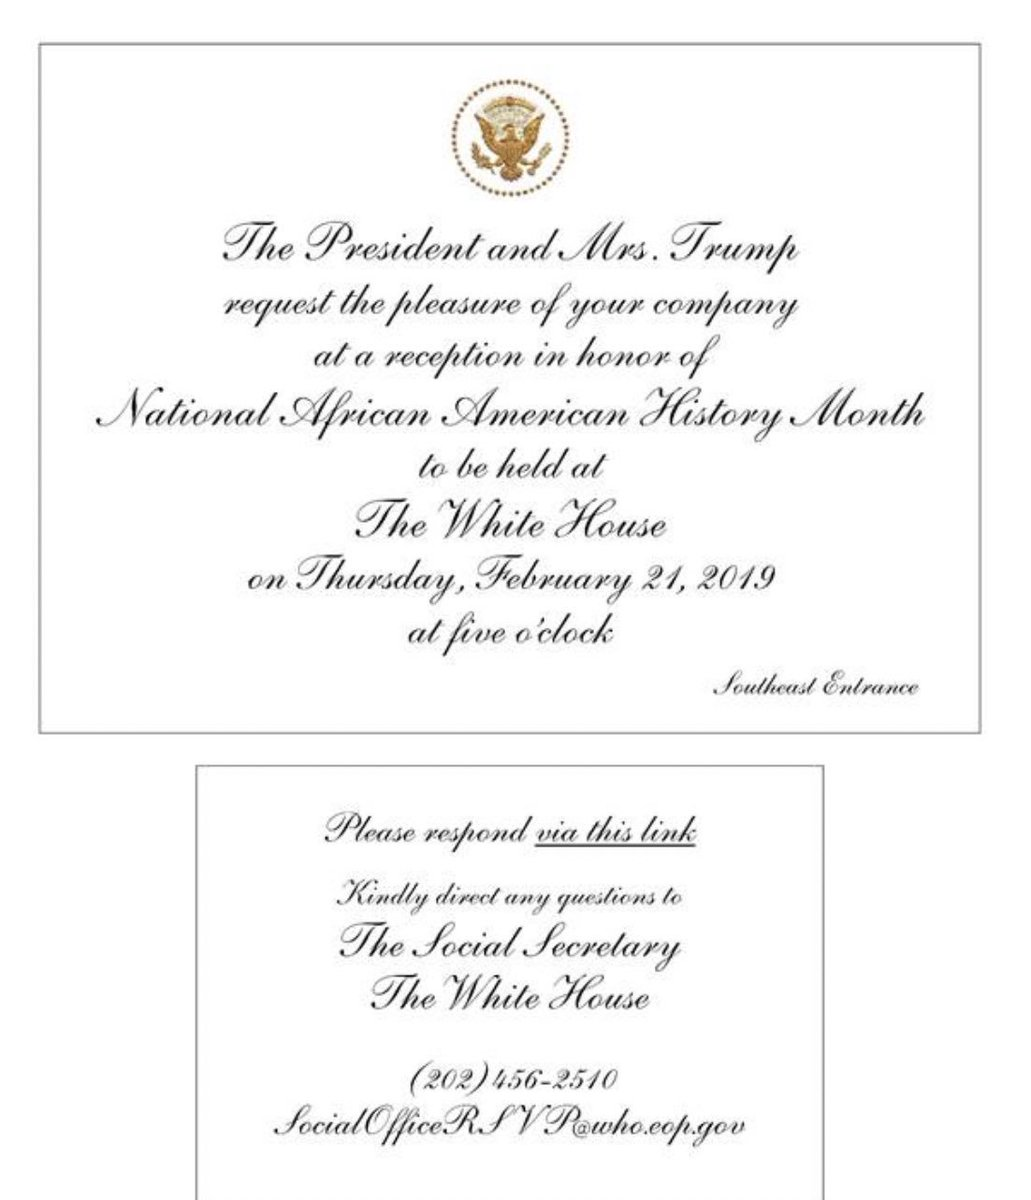 I'm going to the White House this week. Thank you President Trump & Mrs. Trump for the invitation.  #HappyPresidentsDay